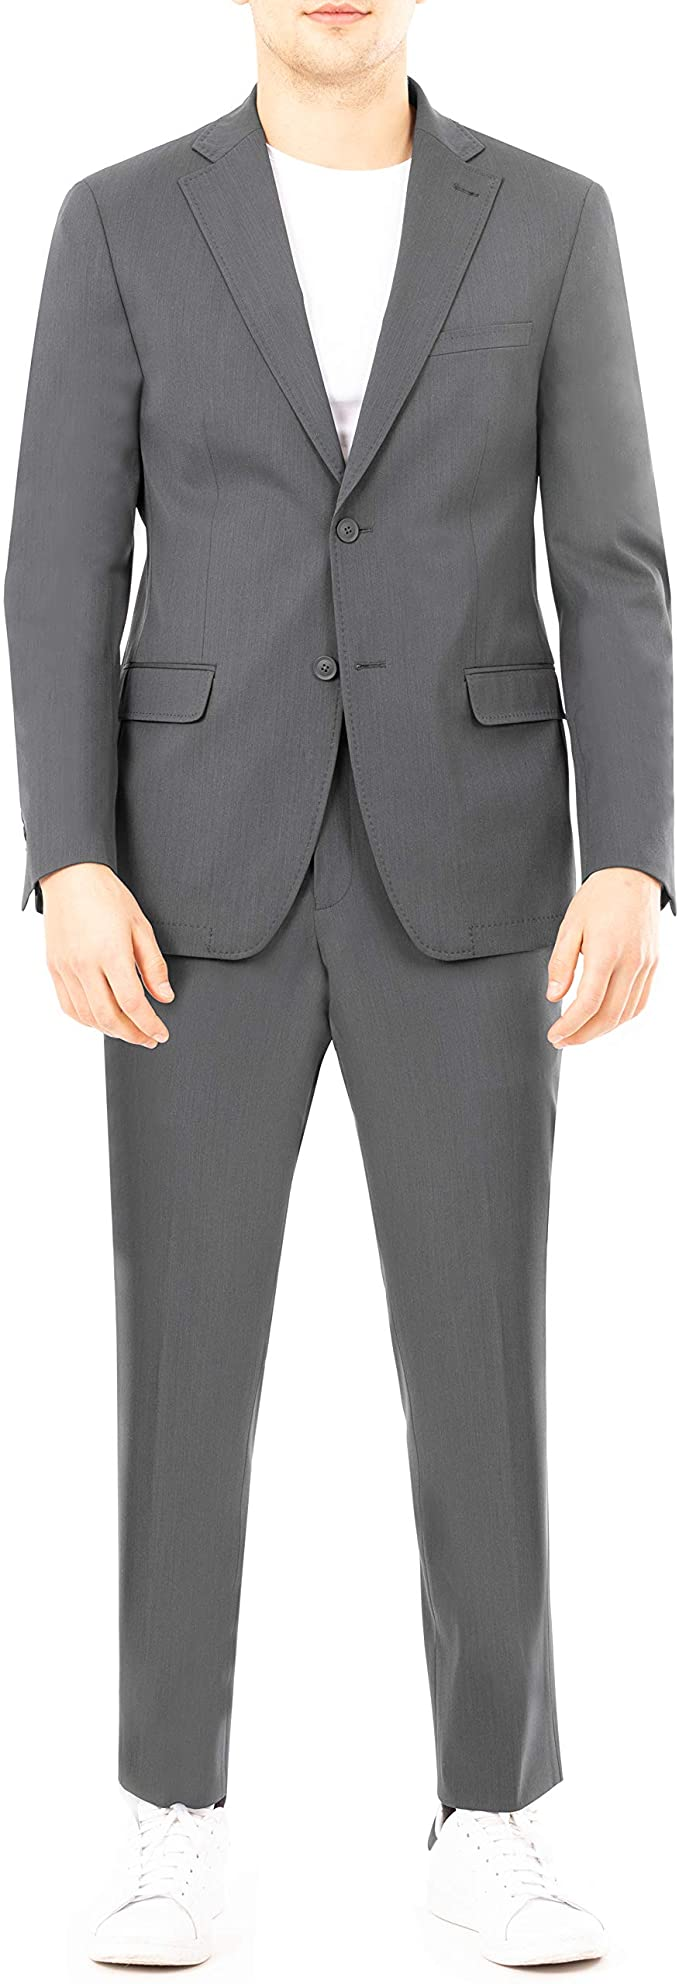 DKNY Men's Active Tailored Suit